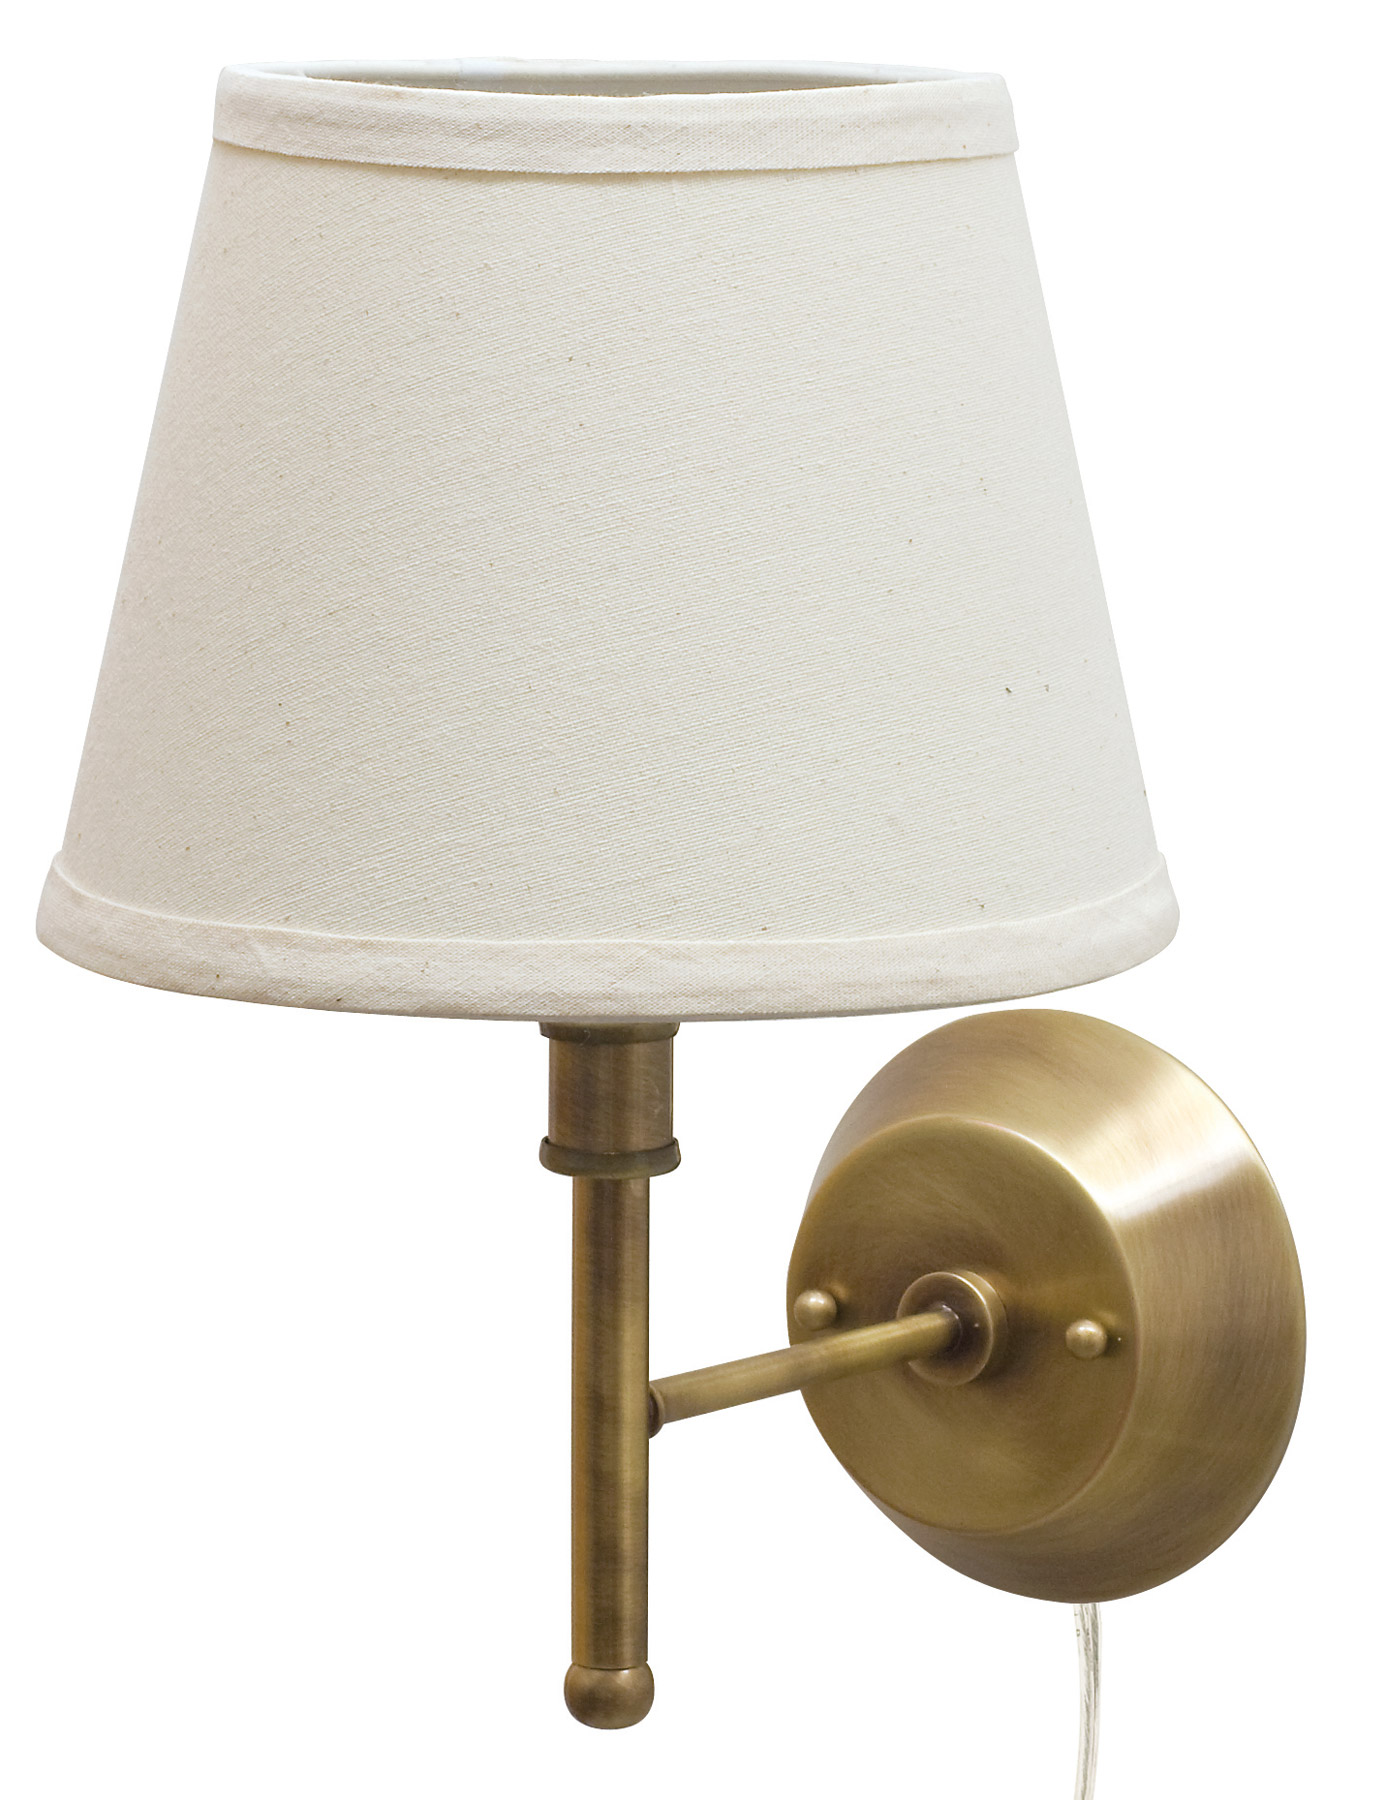 Of troy gr901 ab greensboro pin up wall lamp house of troy gr901 ab greensboro pin up wall lamp mozeypictures Gallery